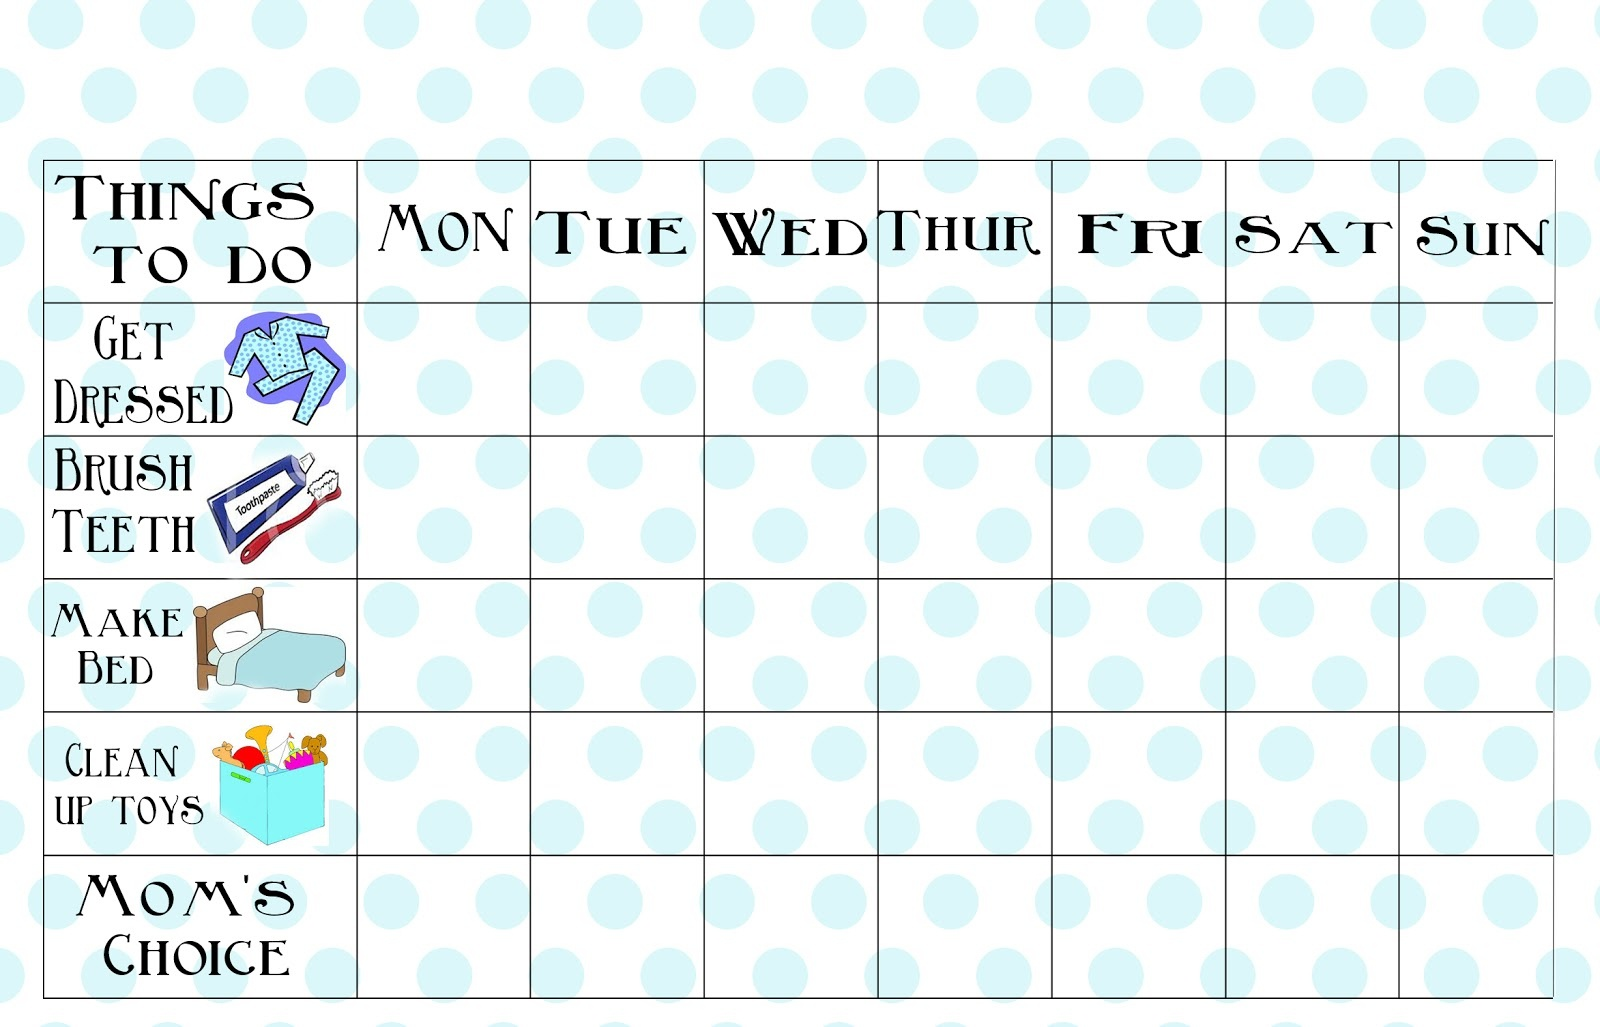 Free Printable Chore Chart - Free Printable Chore Charts For Kids